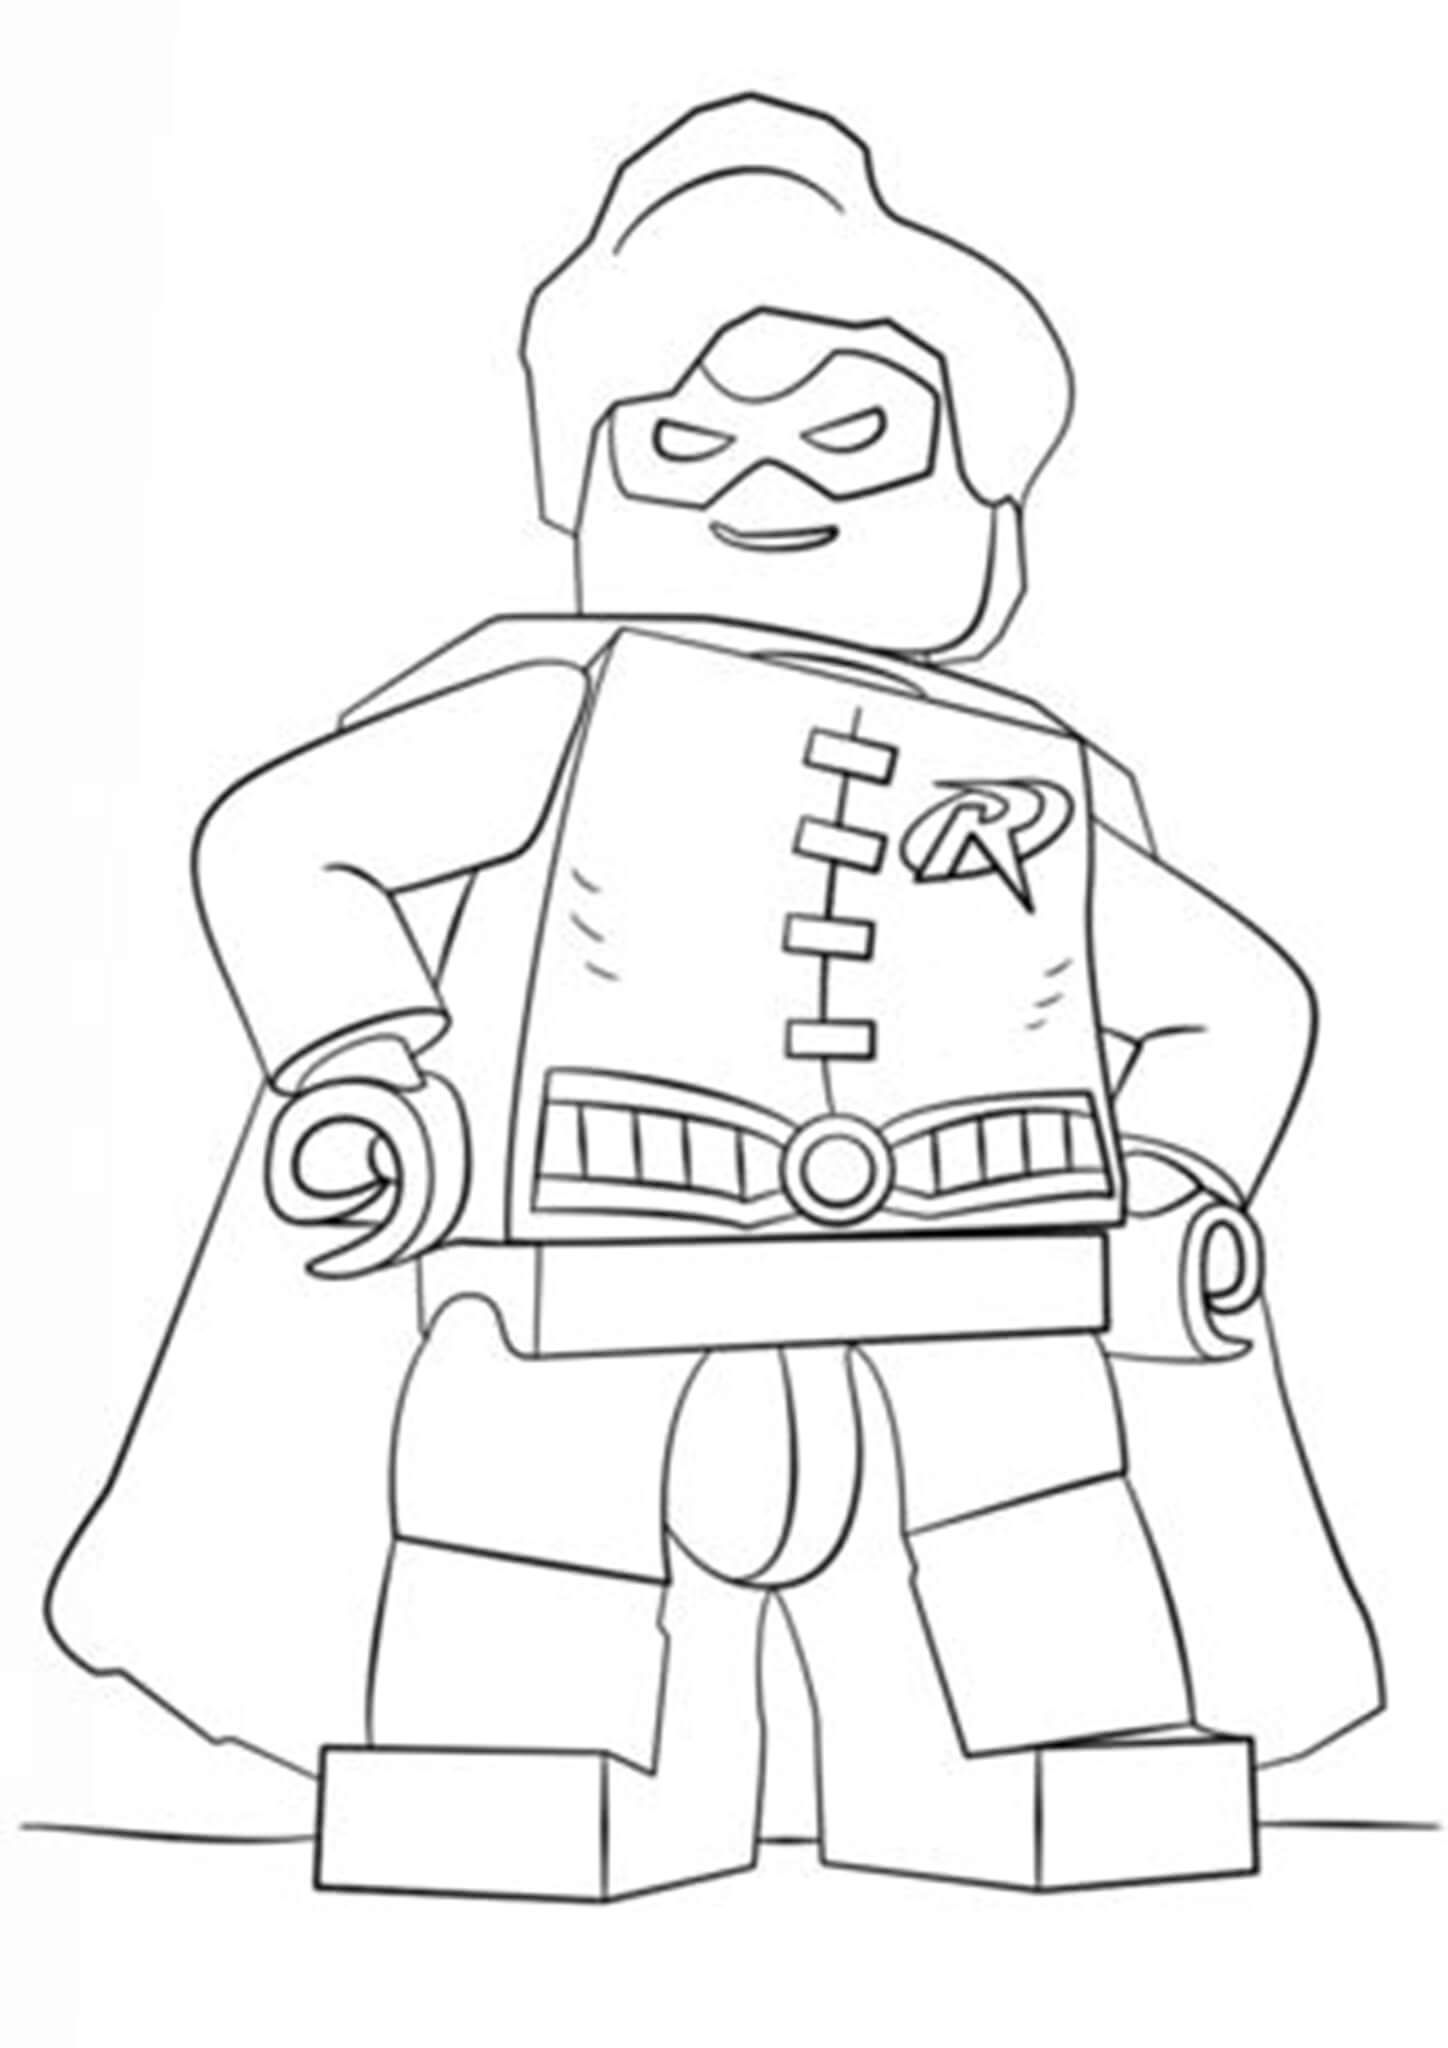 Free Easy To Print Lego Coloring Pages Lego Coloring Pages Superhero Coloring Pages Batman Coloring Pages